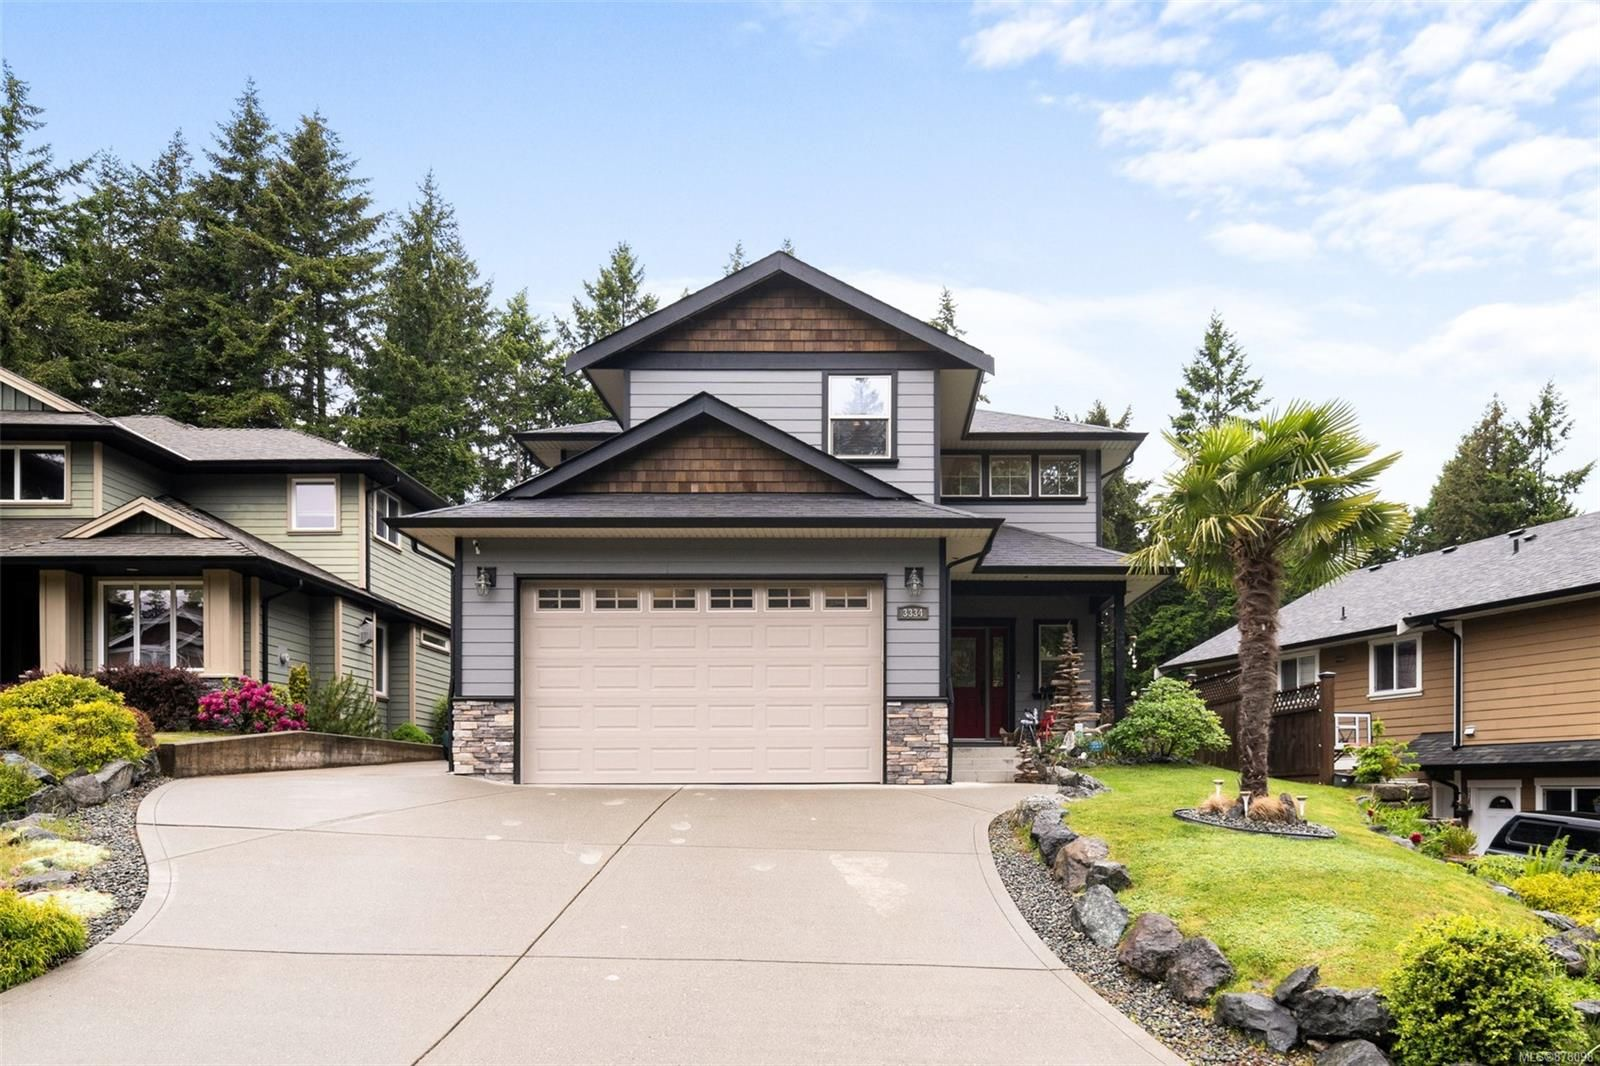 Main Photo: 3334 Sewell Rd in : Co Triangle House for sale (Colwood)  : MLS®# 878098